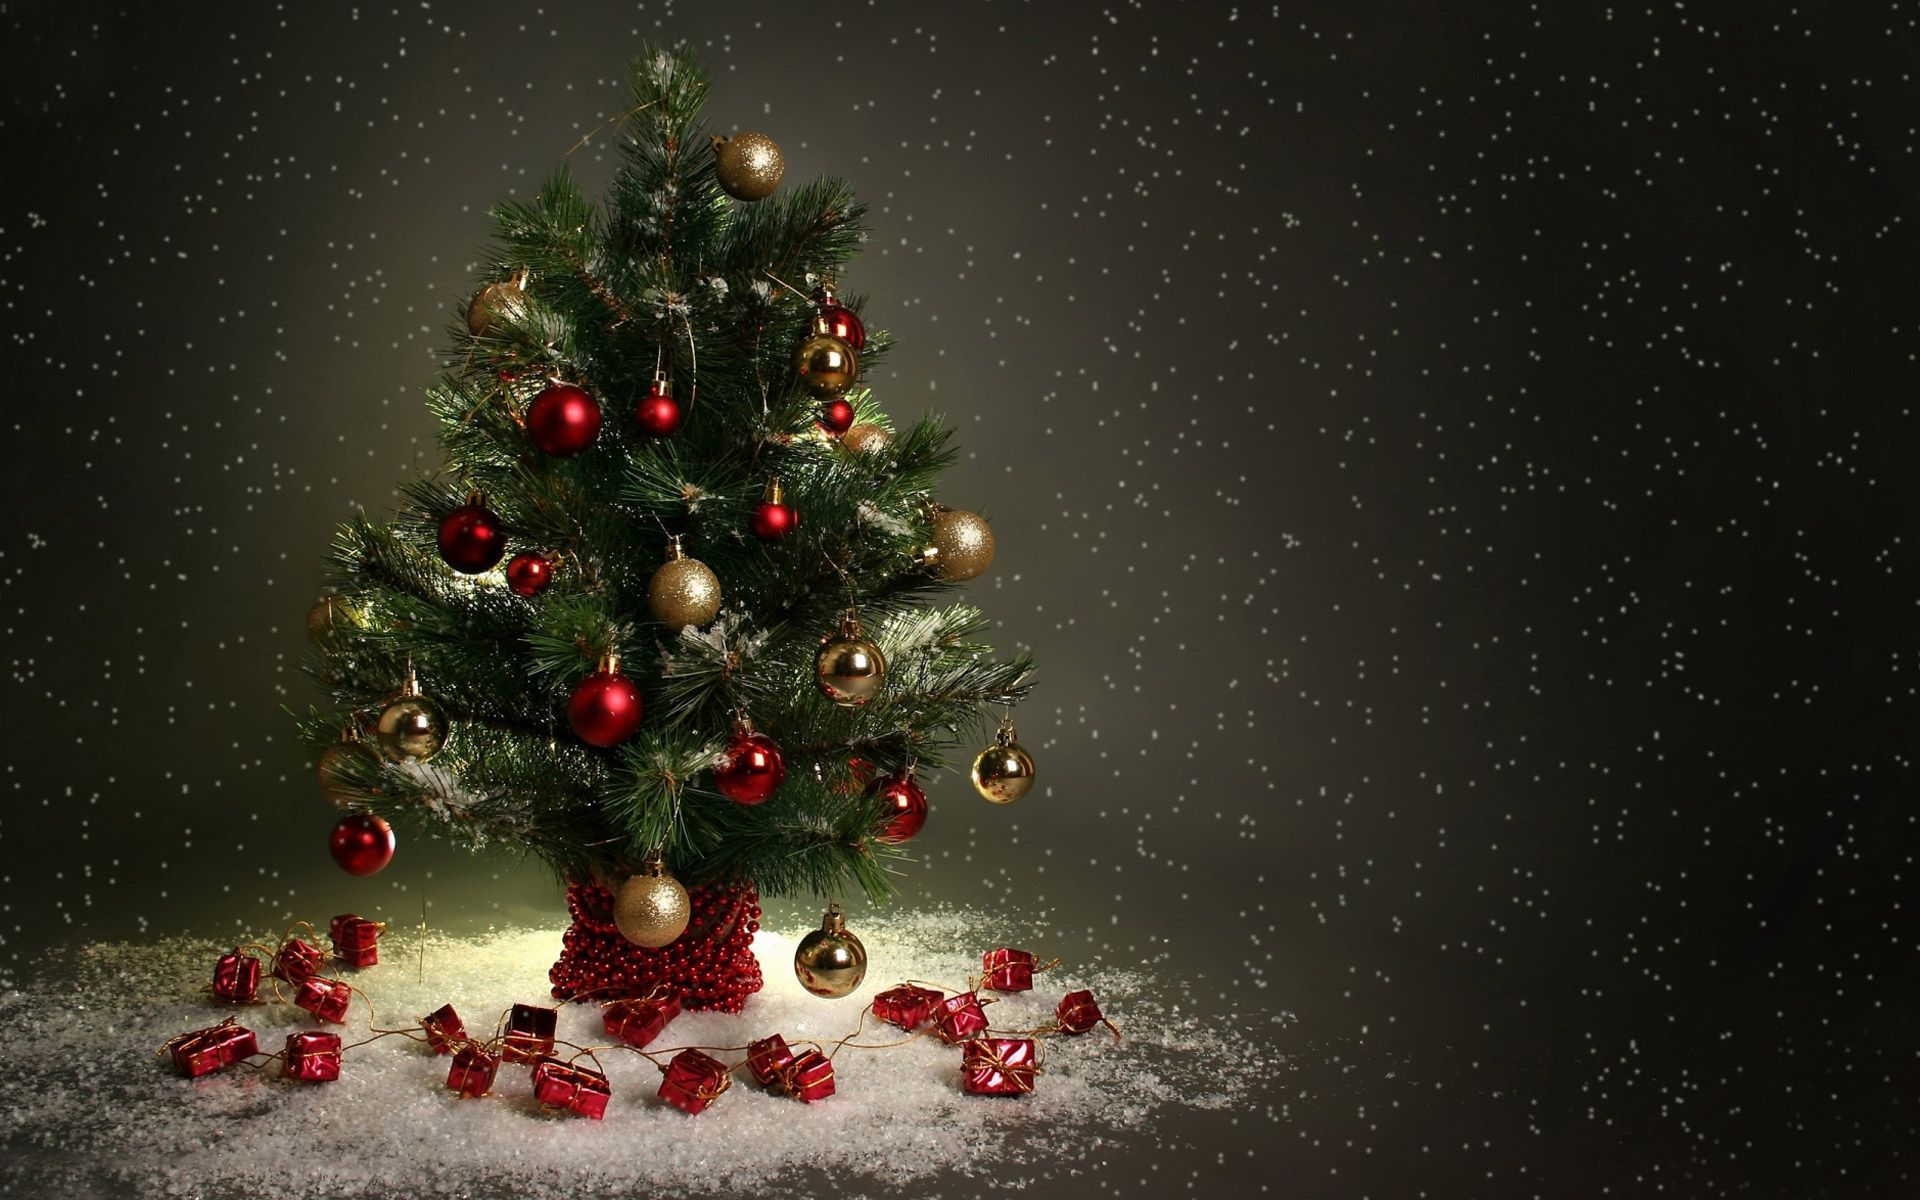 Beautiful Christmas Tree Hd Wallpapers Free Download Tree Pictures Full Hd Christmas Tree Images Free Christmas Wallpaper Downloads Christmas Tree Wallpaper